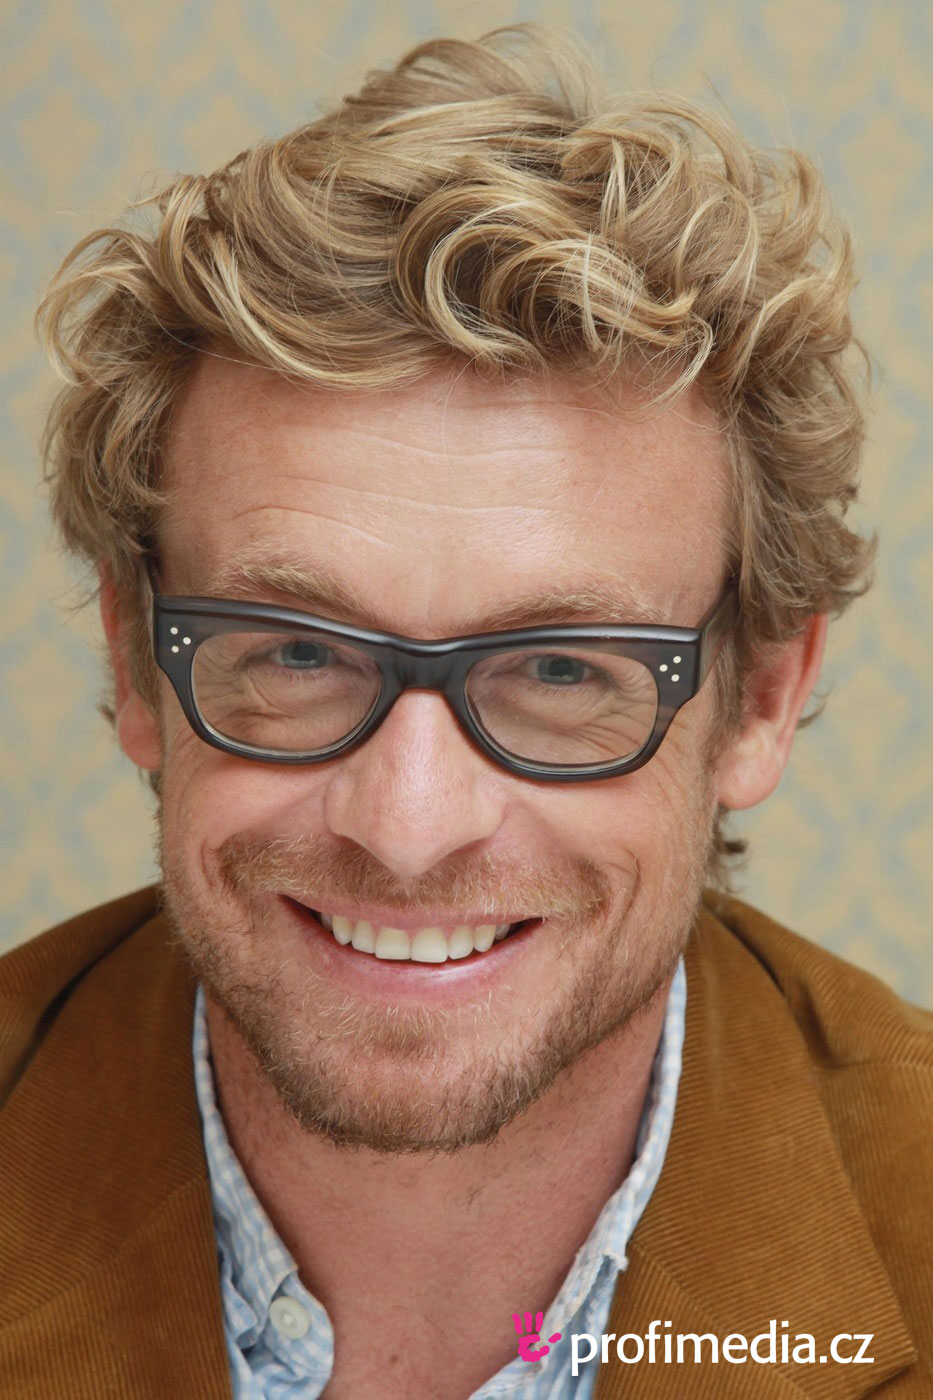 simon baker givenchysimon baker 2016, simon baker wife, simon baker 2017, simon baker gif, simon baker young, simon baker breath, simon baker twitter, simon baker family, simon baker givenchy, simon baker vk, simon baker facebook, simon baker daughter, simon baker gif tumblr, simon baker height, simon baker film, simon baker wiki, simon baker gentlemen only, simon baker givenchy gentlemen only, simon baker nicholas bishop, simon baker suit